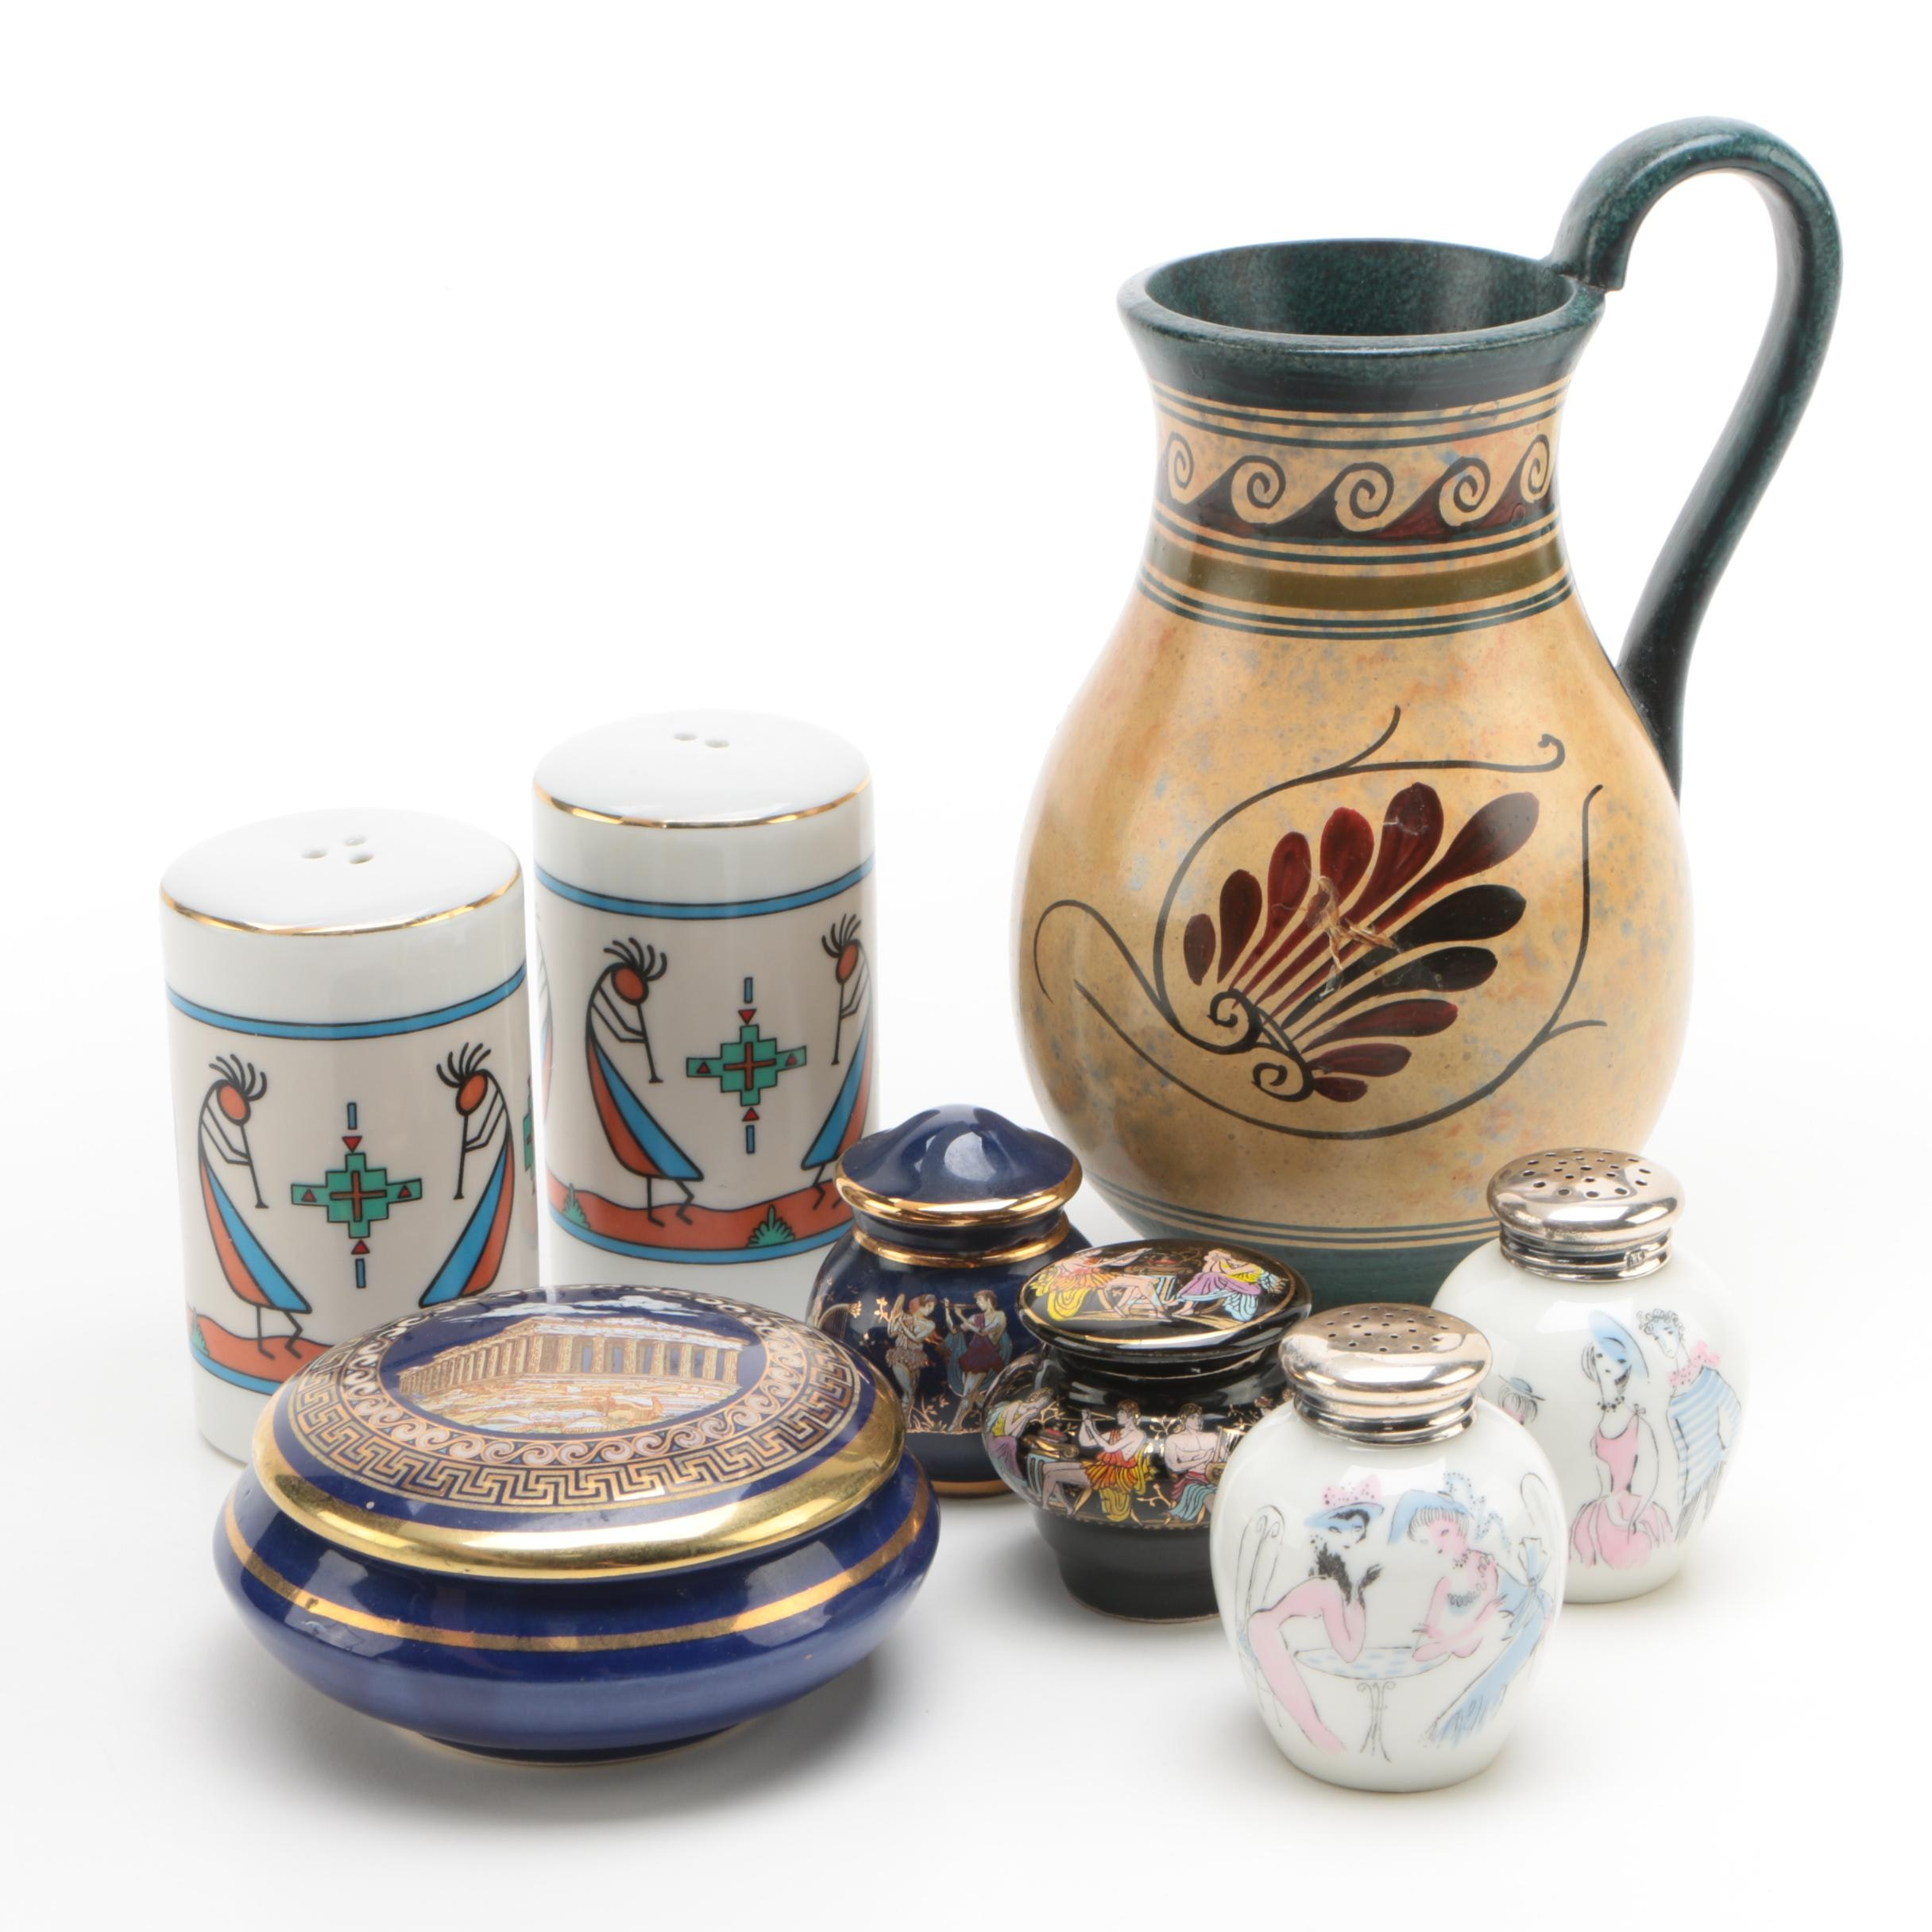 Multicultural Decor Featuring 24K Gold Accented Trinket Box and More